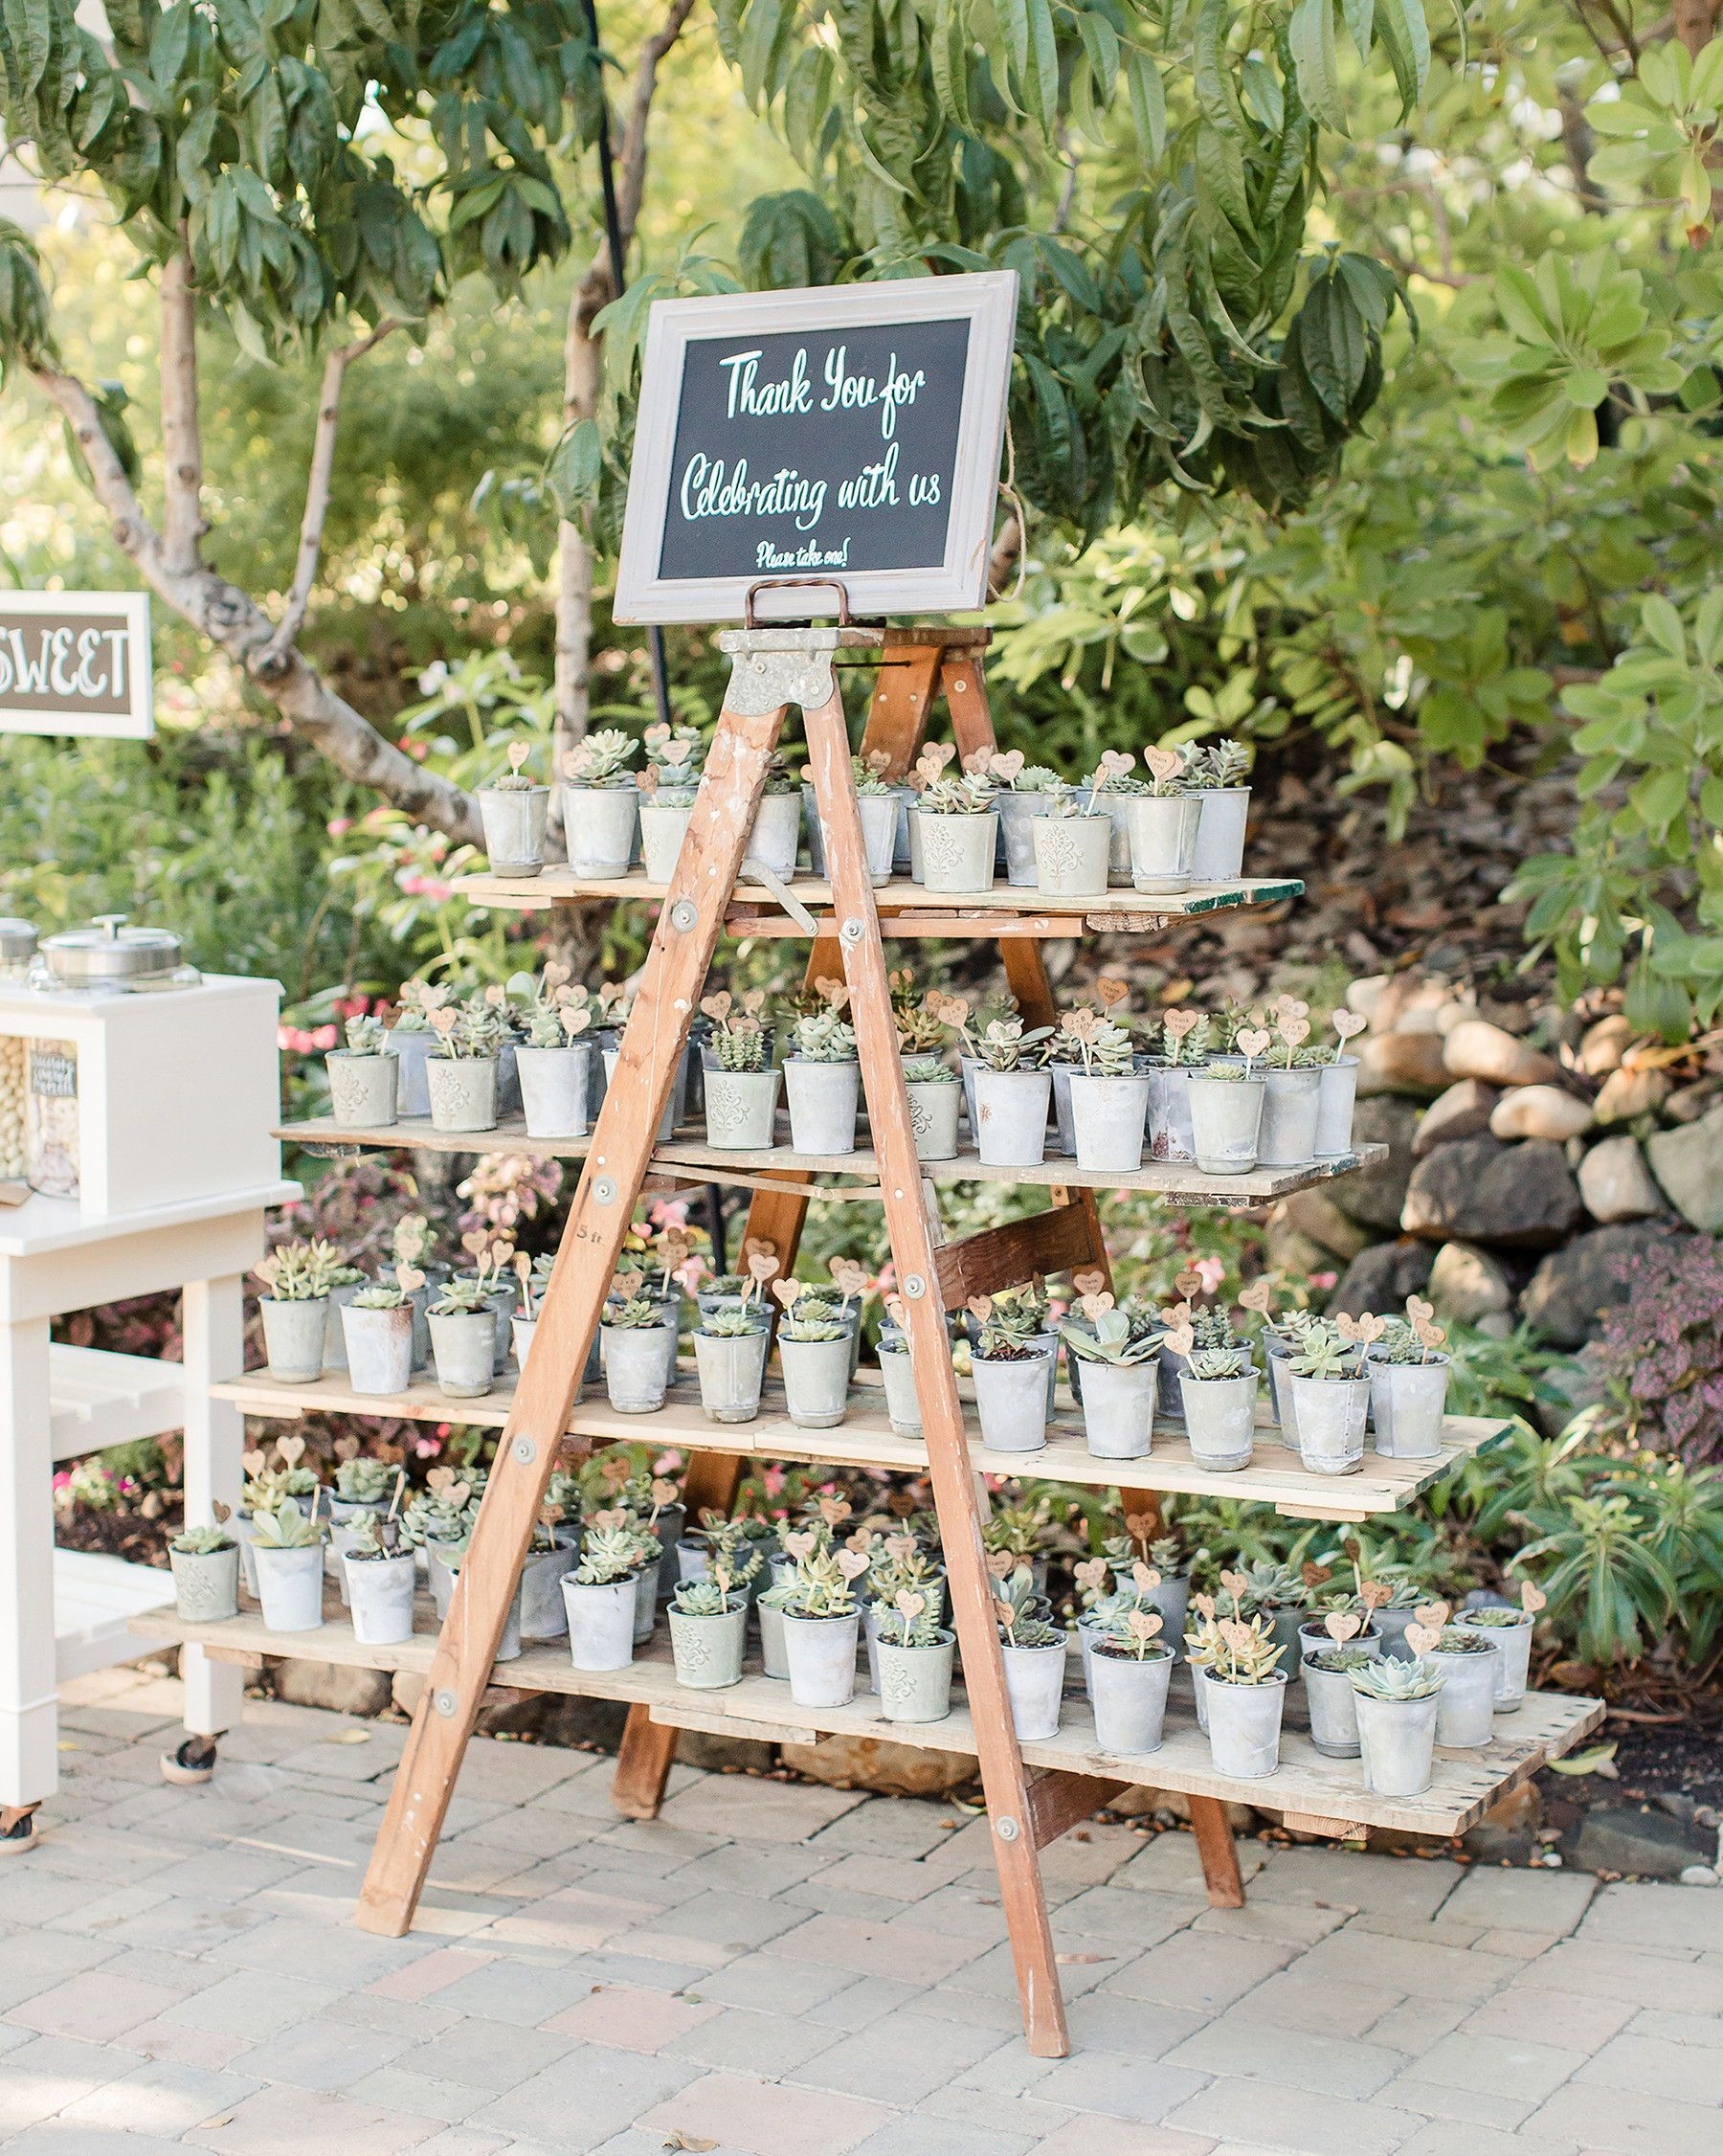 28 Unique Ways to Display Your Wedding Favors